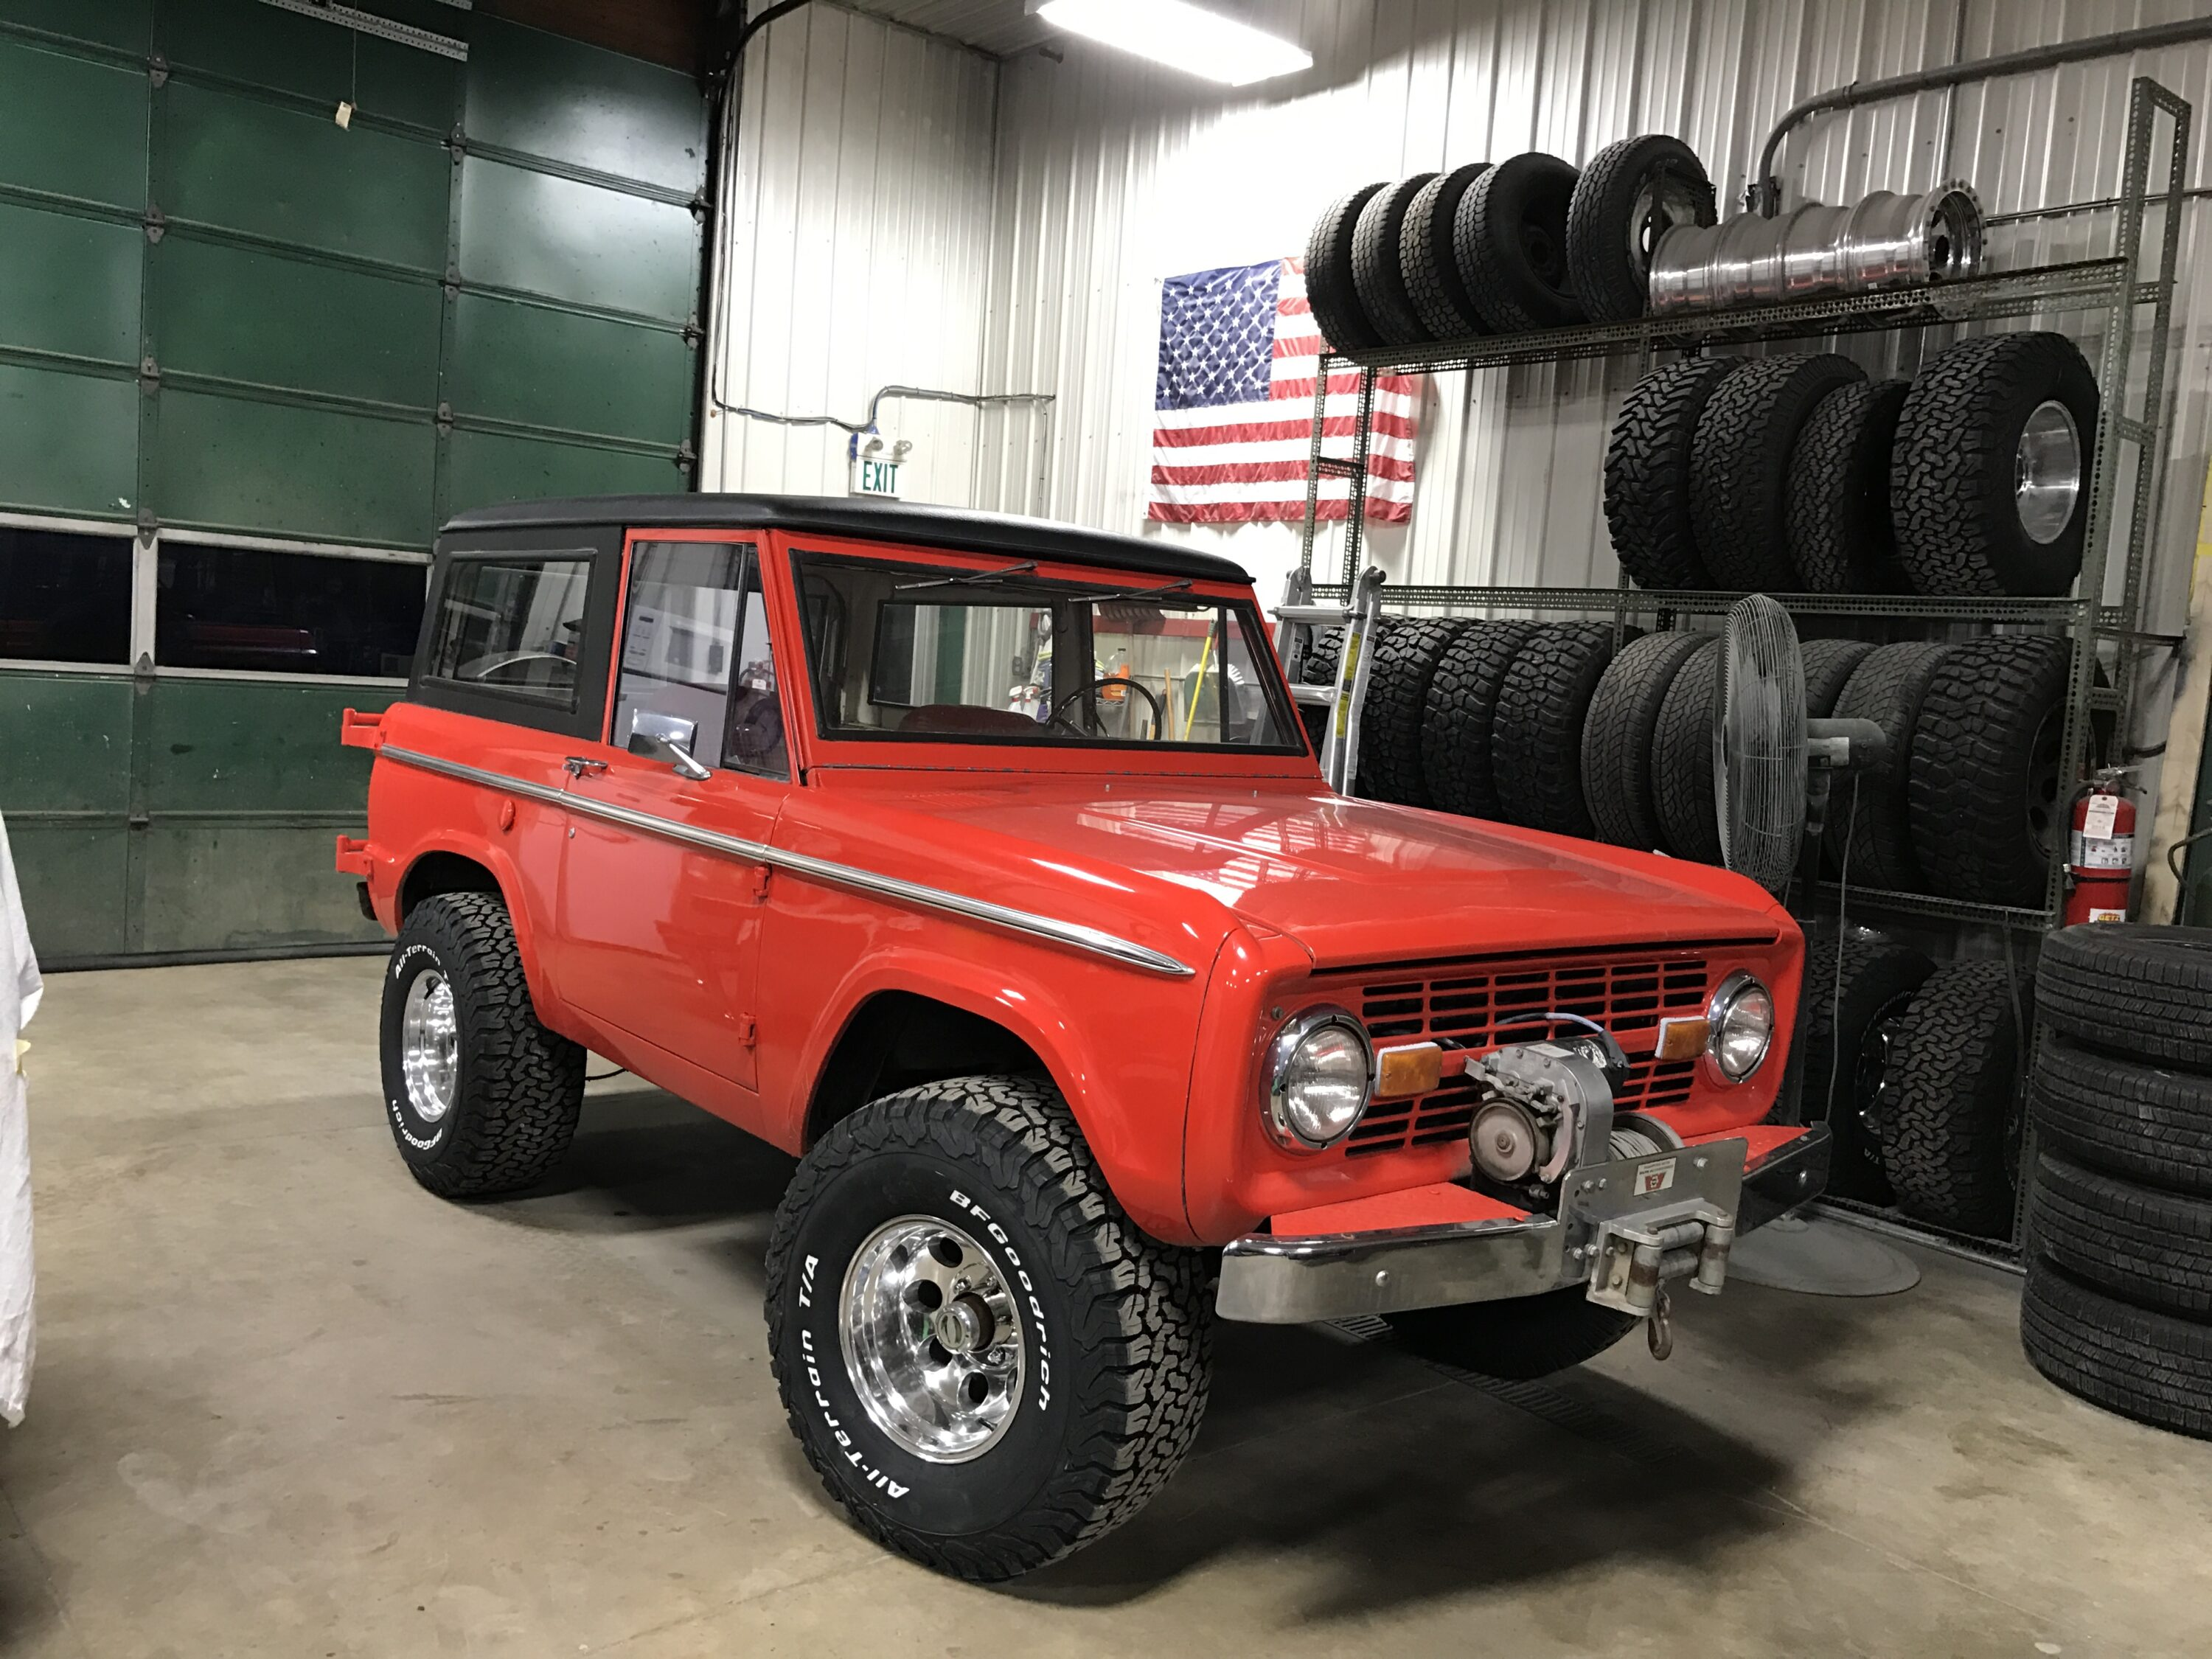 1974 Ford Bronco Explorer Maxlider Brothers Customs